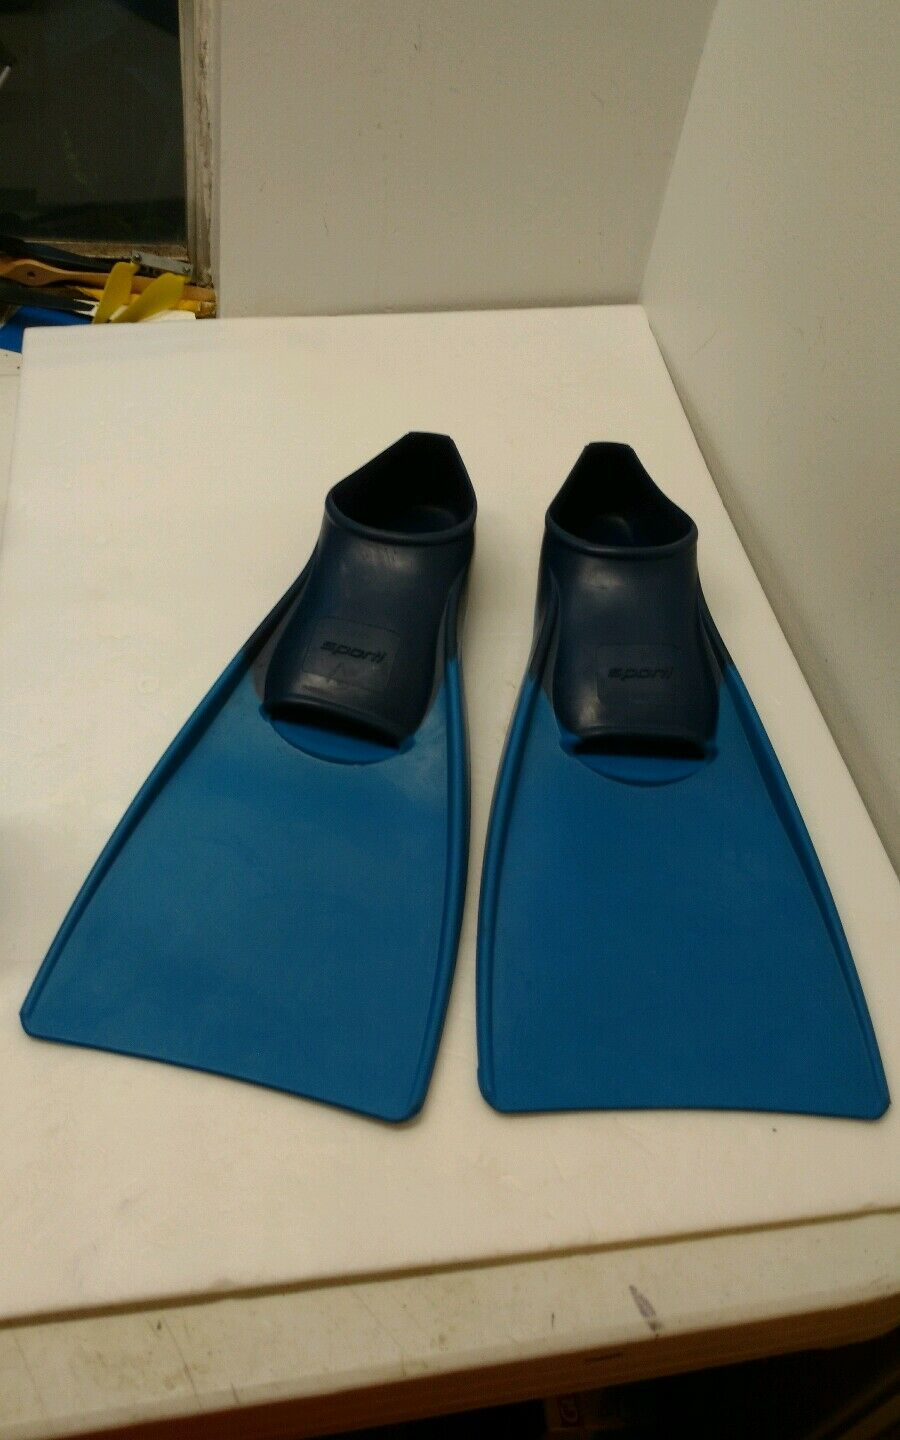 Sporti Floating Swim Fins blueee Men's 9-10 Women's 10-11 Vintage